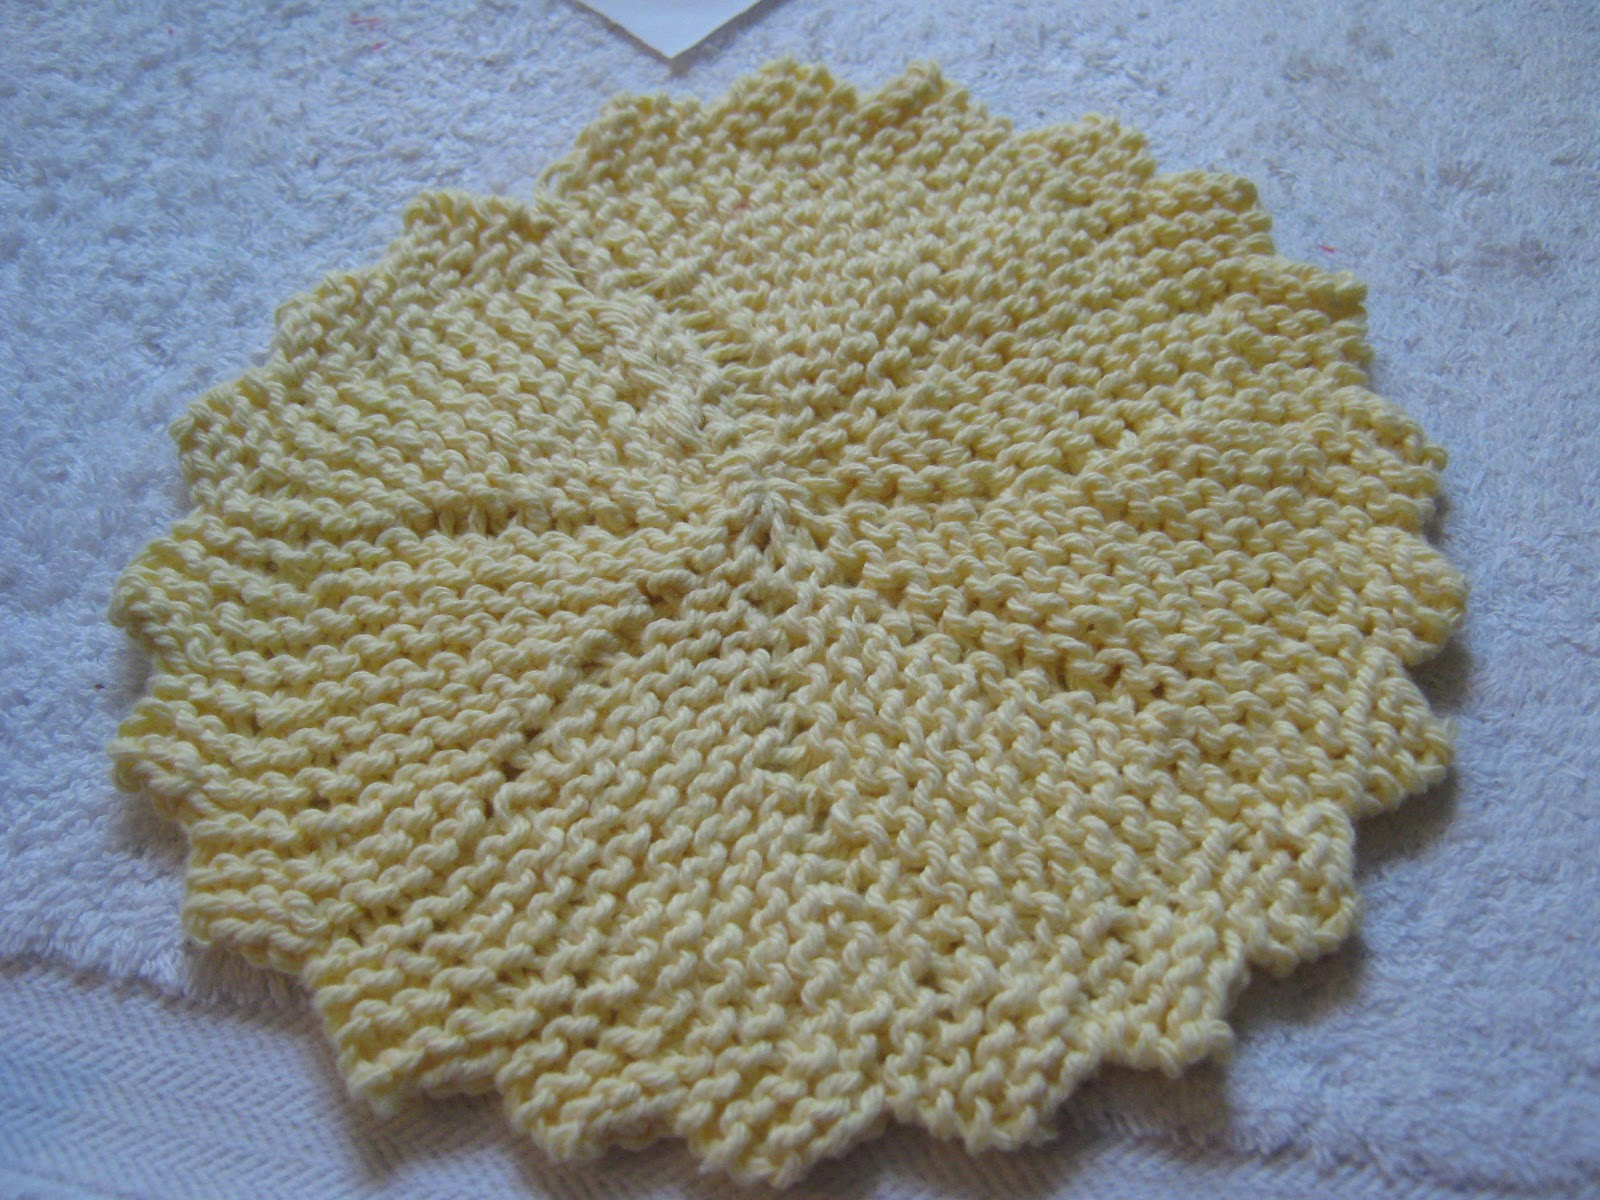 Knitted Circular Dishcloth Patterns : Erndales N More: Stash Buster Thursday - Knitted Round Dishcloth!